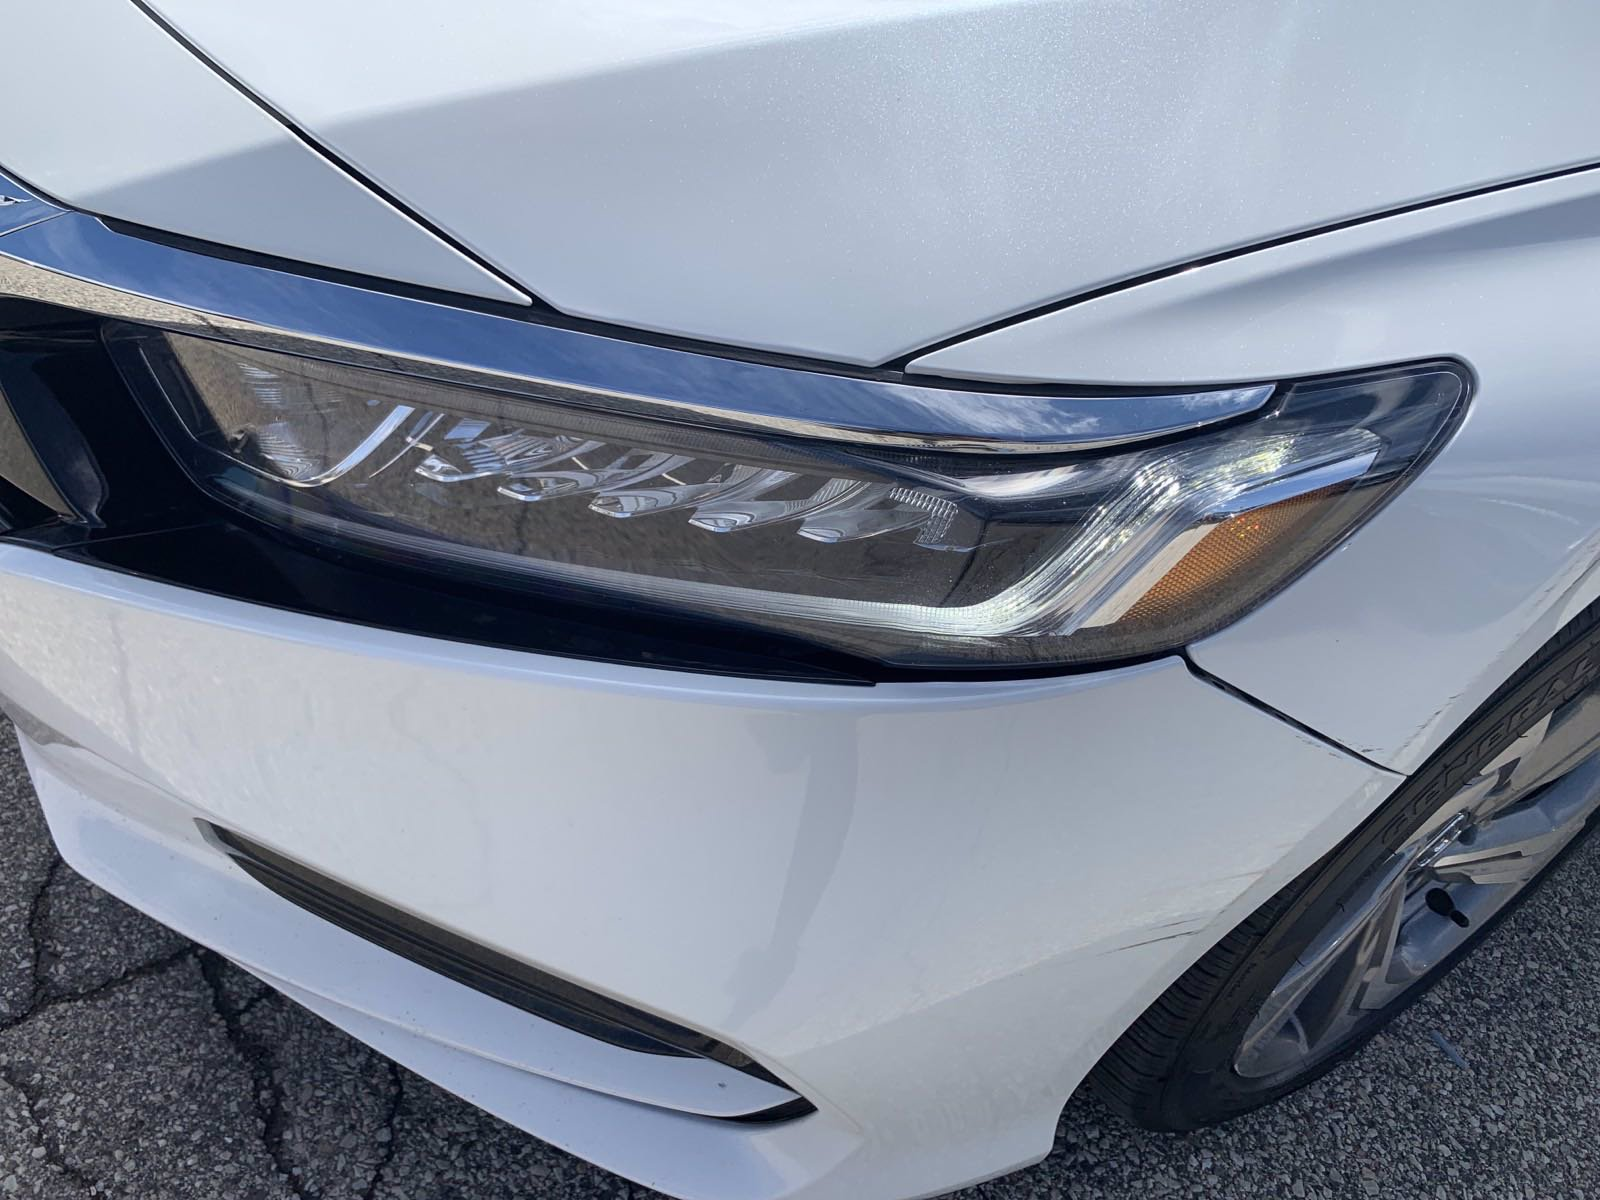 Certified Pre-Owned 2018 Honda Accord EX-L 2.0T